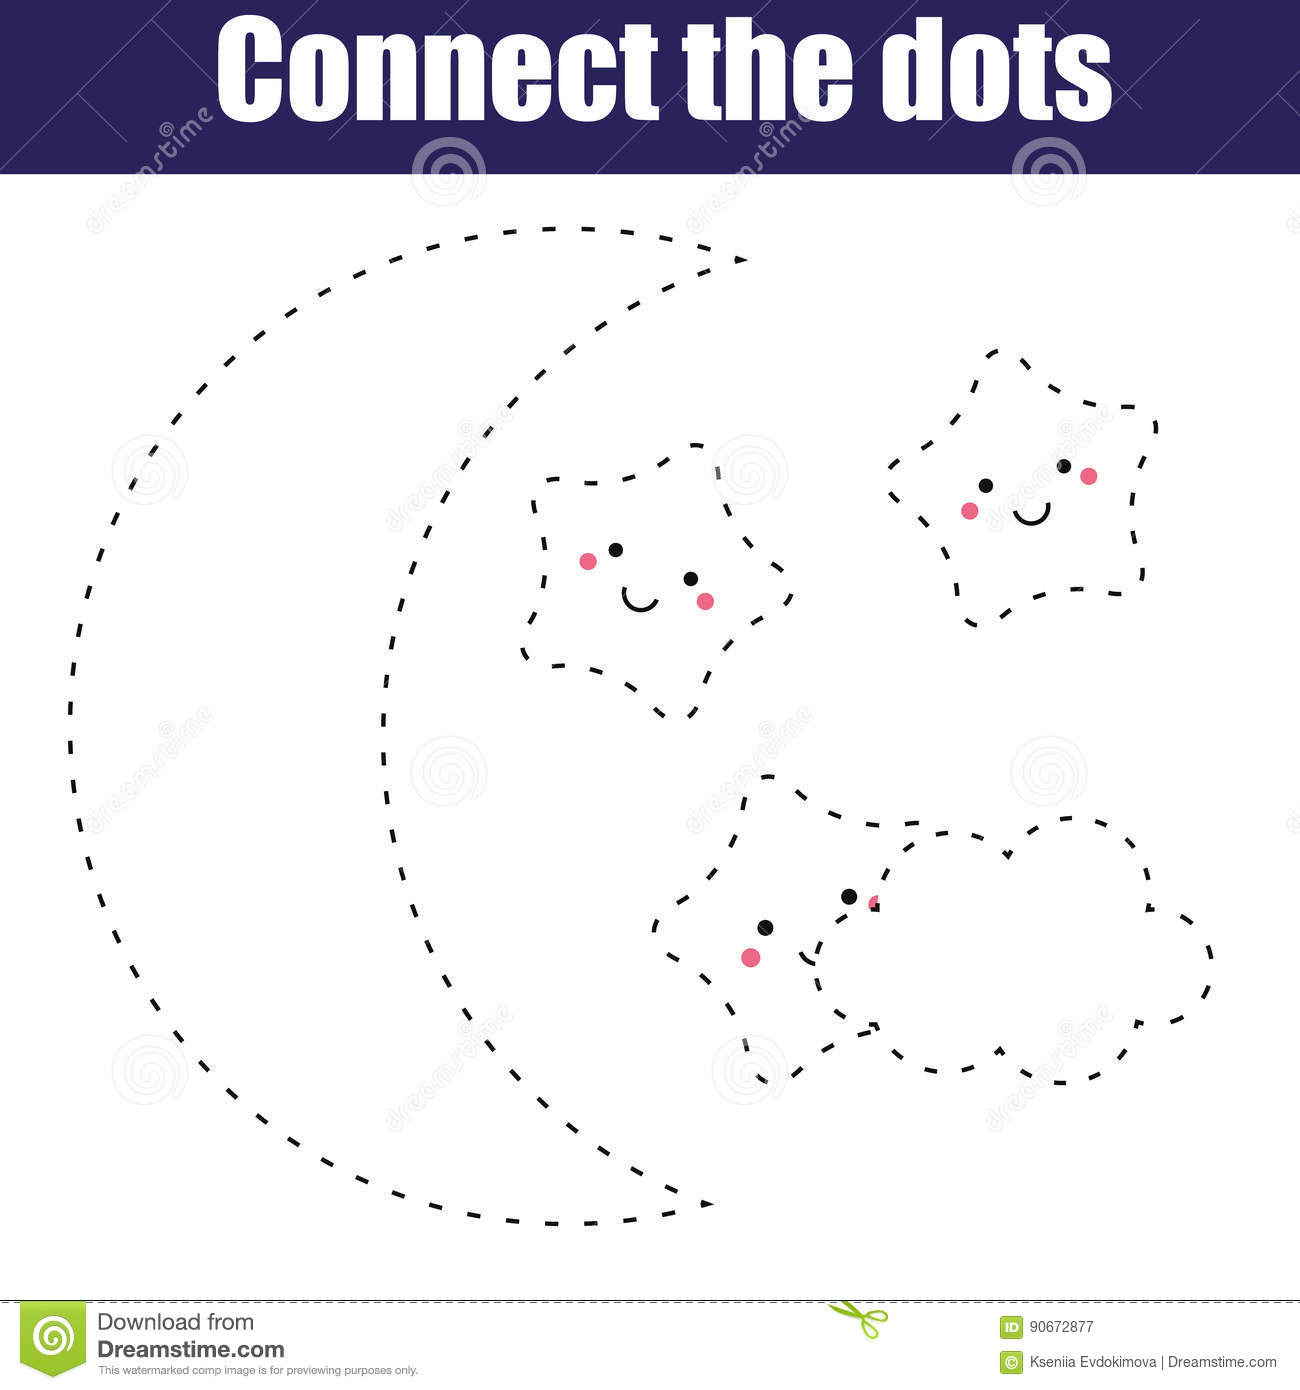 image about Connect the Dots Game Printable titled Communicate The Dots Kids Informative Match. Printable